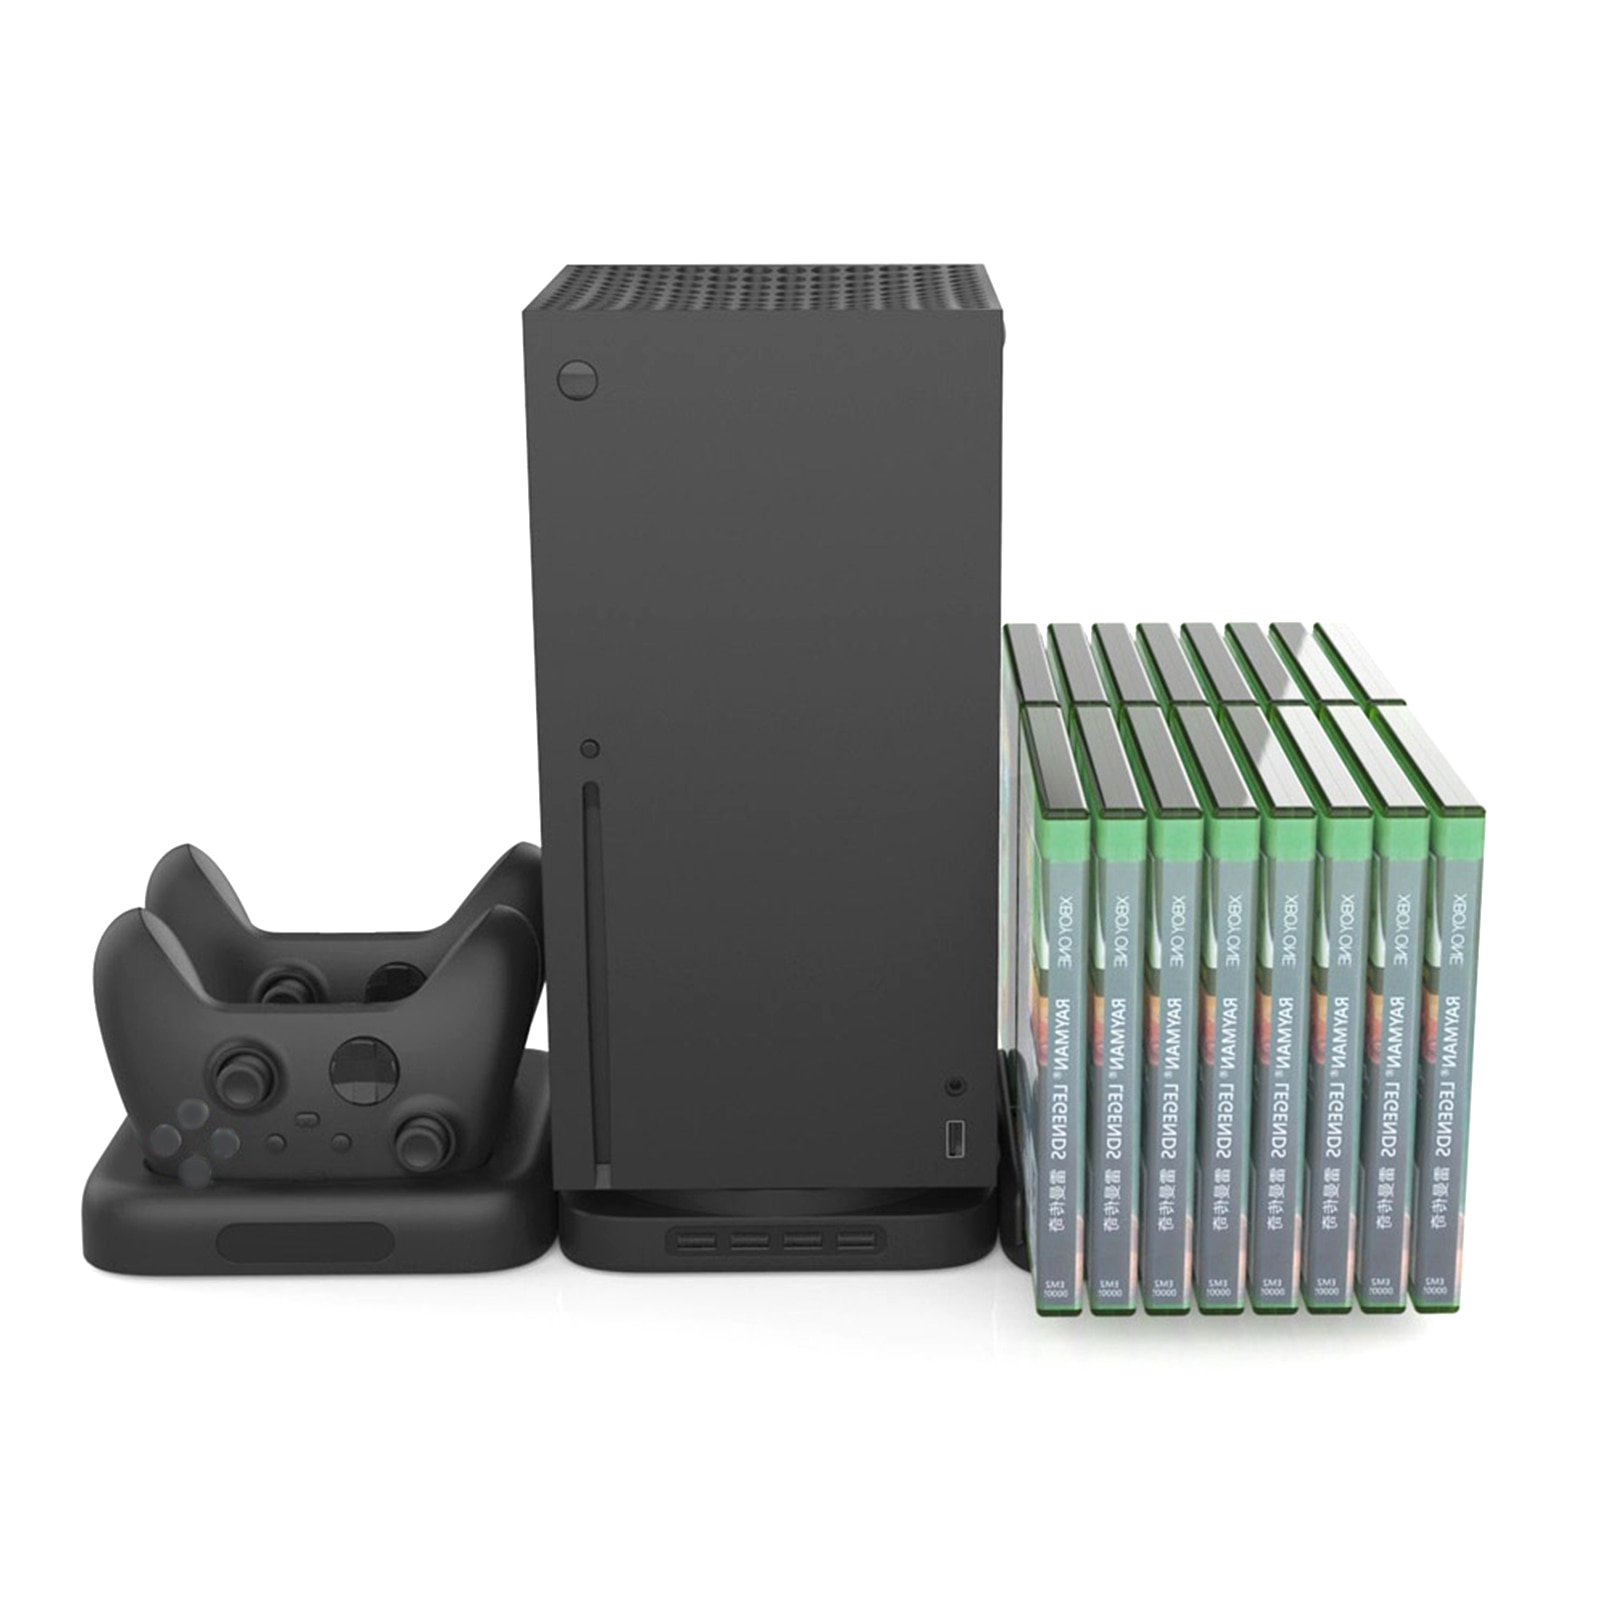 game-console-charger-charging-adapter-for-xbox-series-x-adapter-multi-function-main-engine-cooling-base-games-accessories